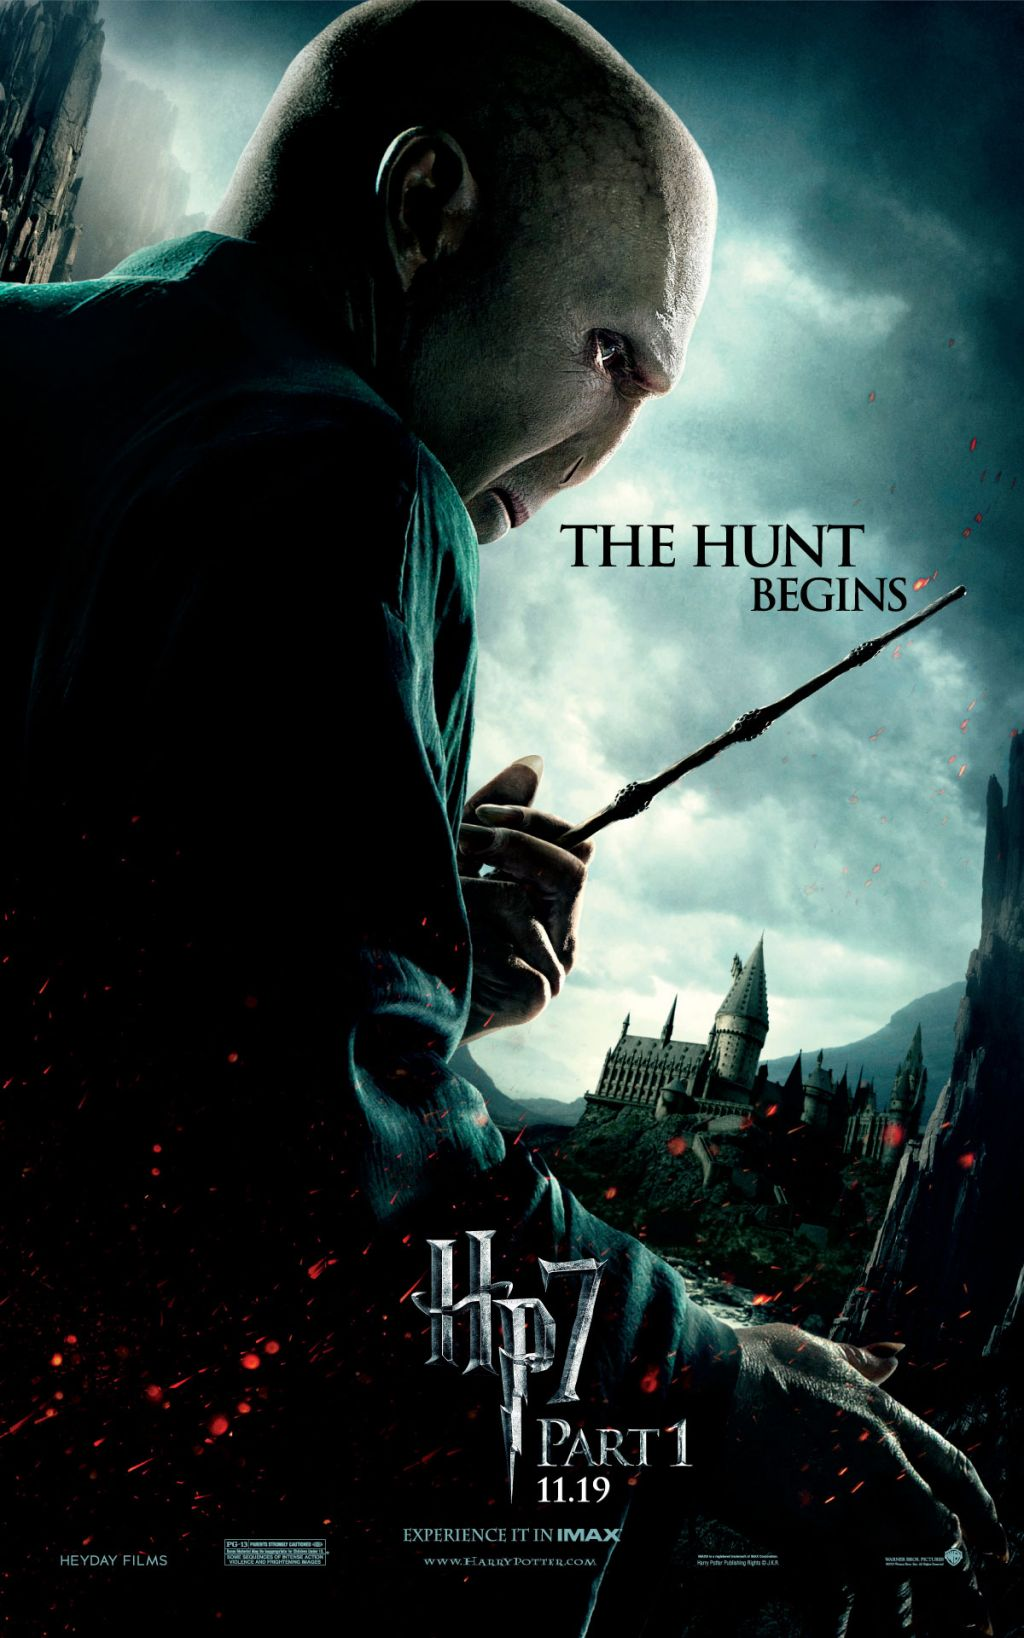 Harry potter and the deathly hallows part i movie posters for Harry potter and the deathly hallows wand